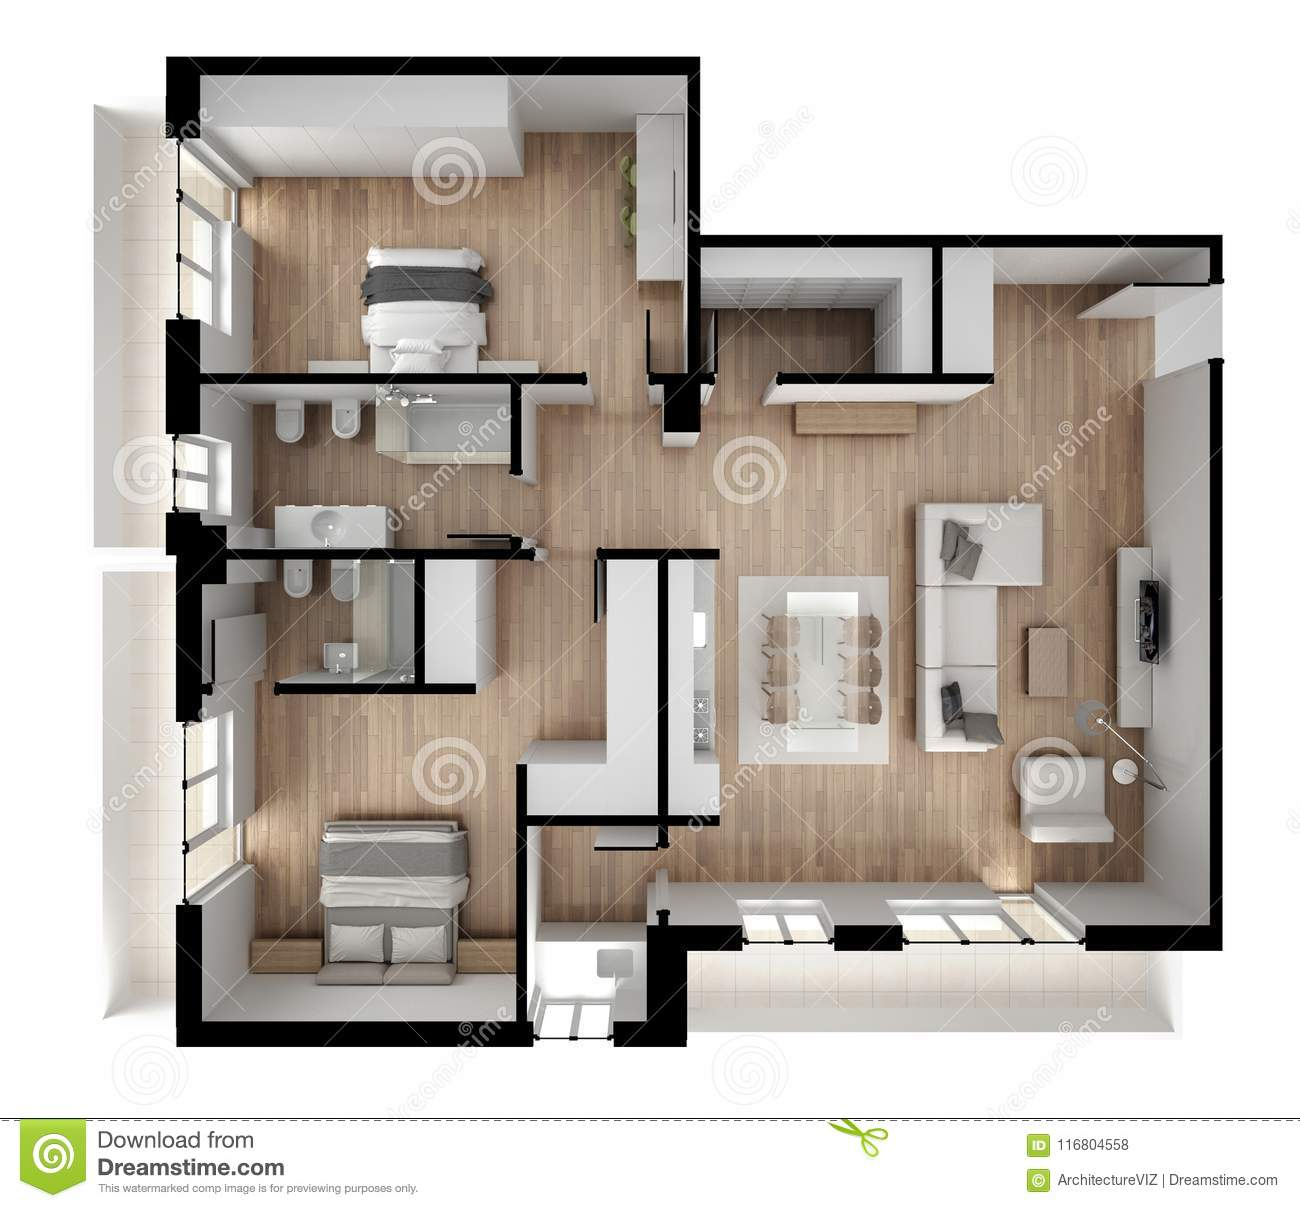 Flat Apartment Definition: Apartment Flat Top View, Furniture And Decors, Plan, Cross